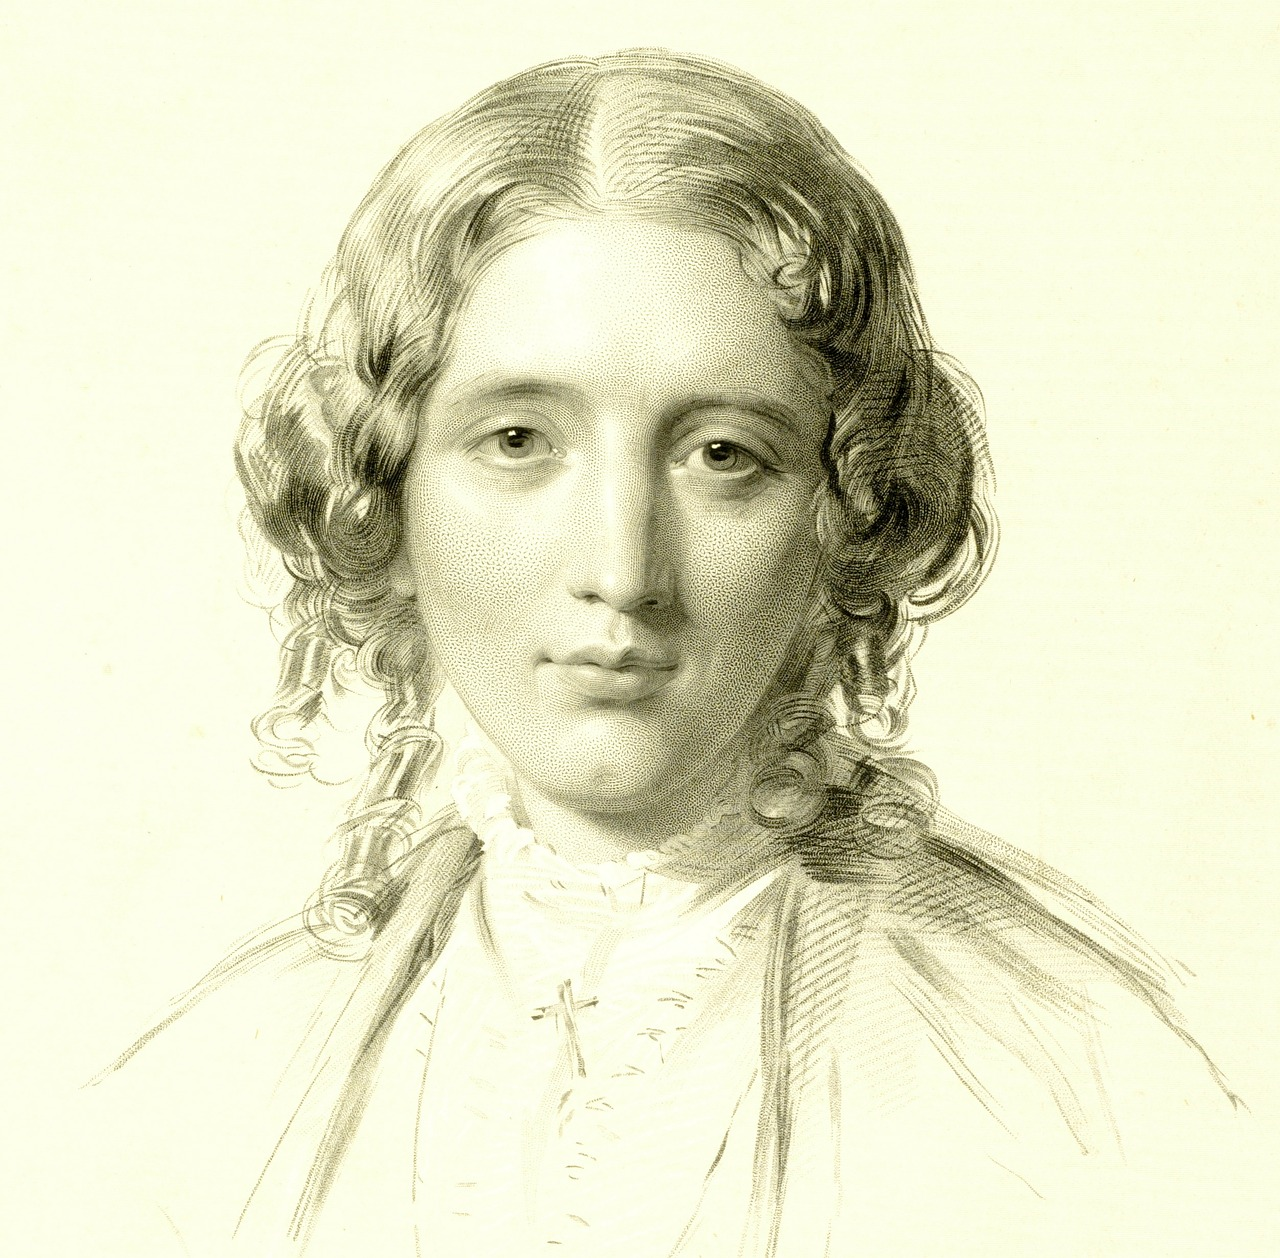 writer harriet beecher stowe portrait free photo